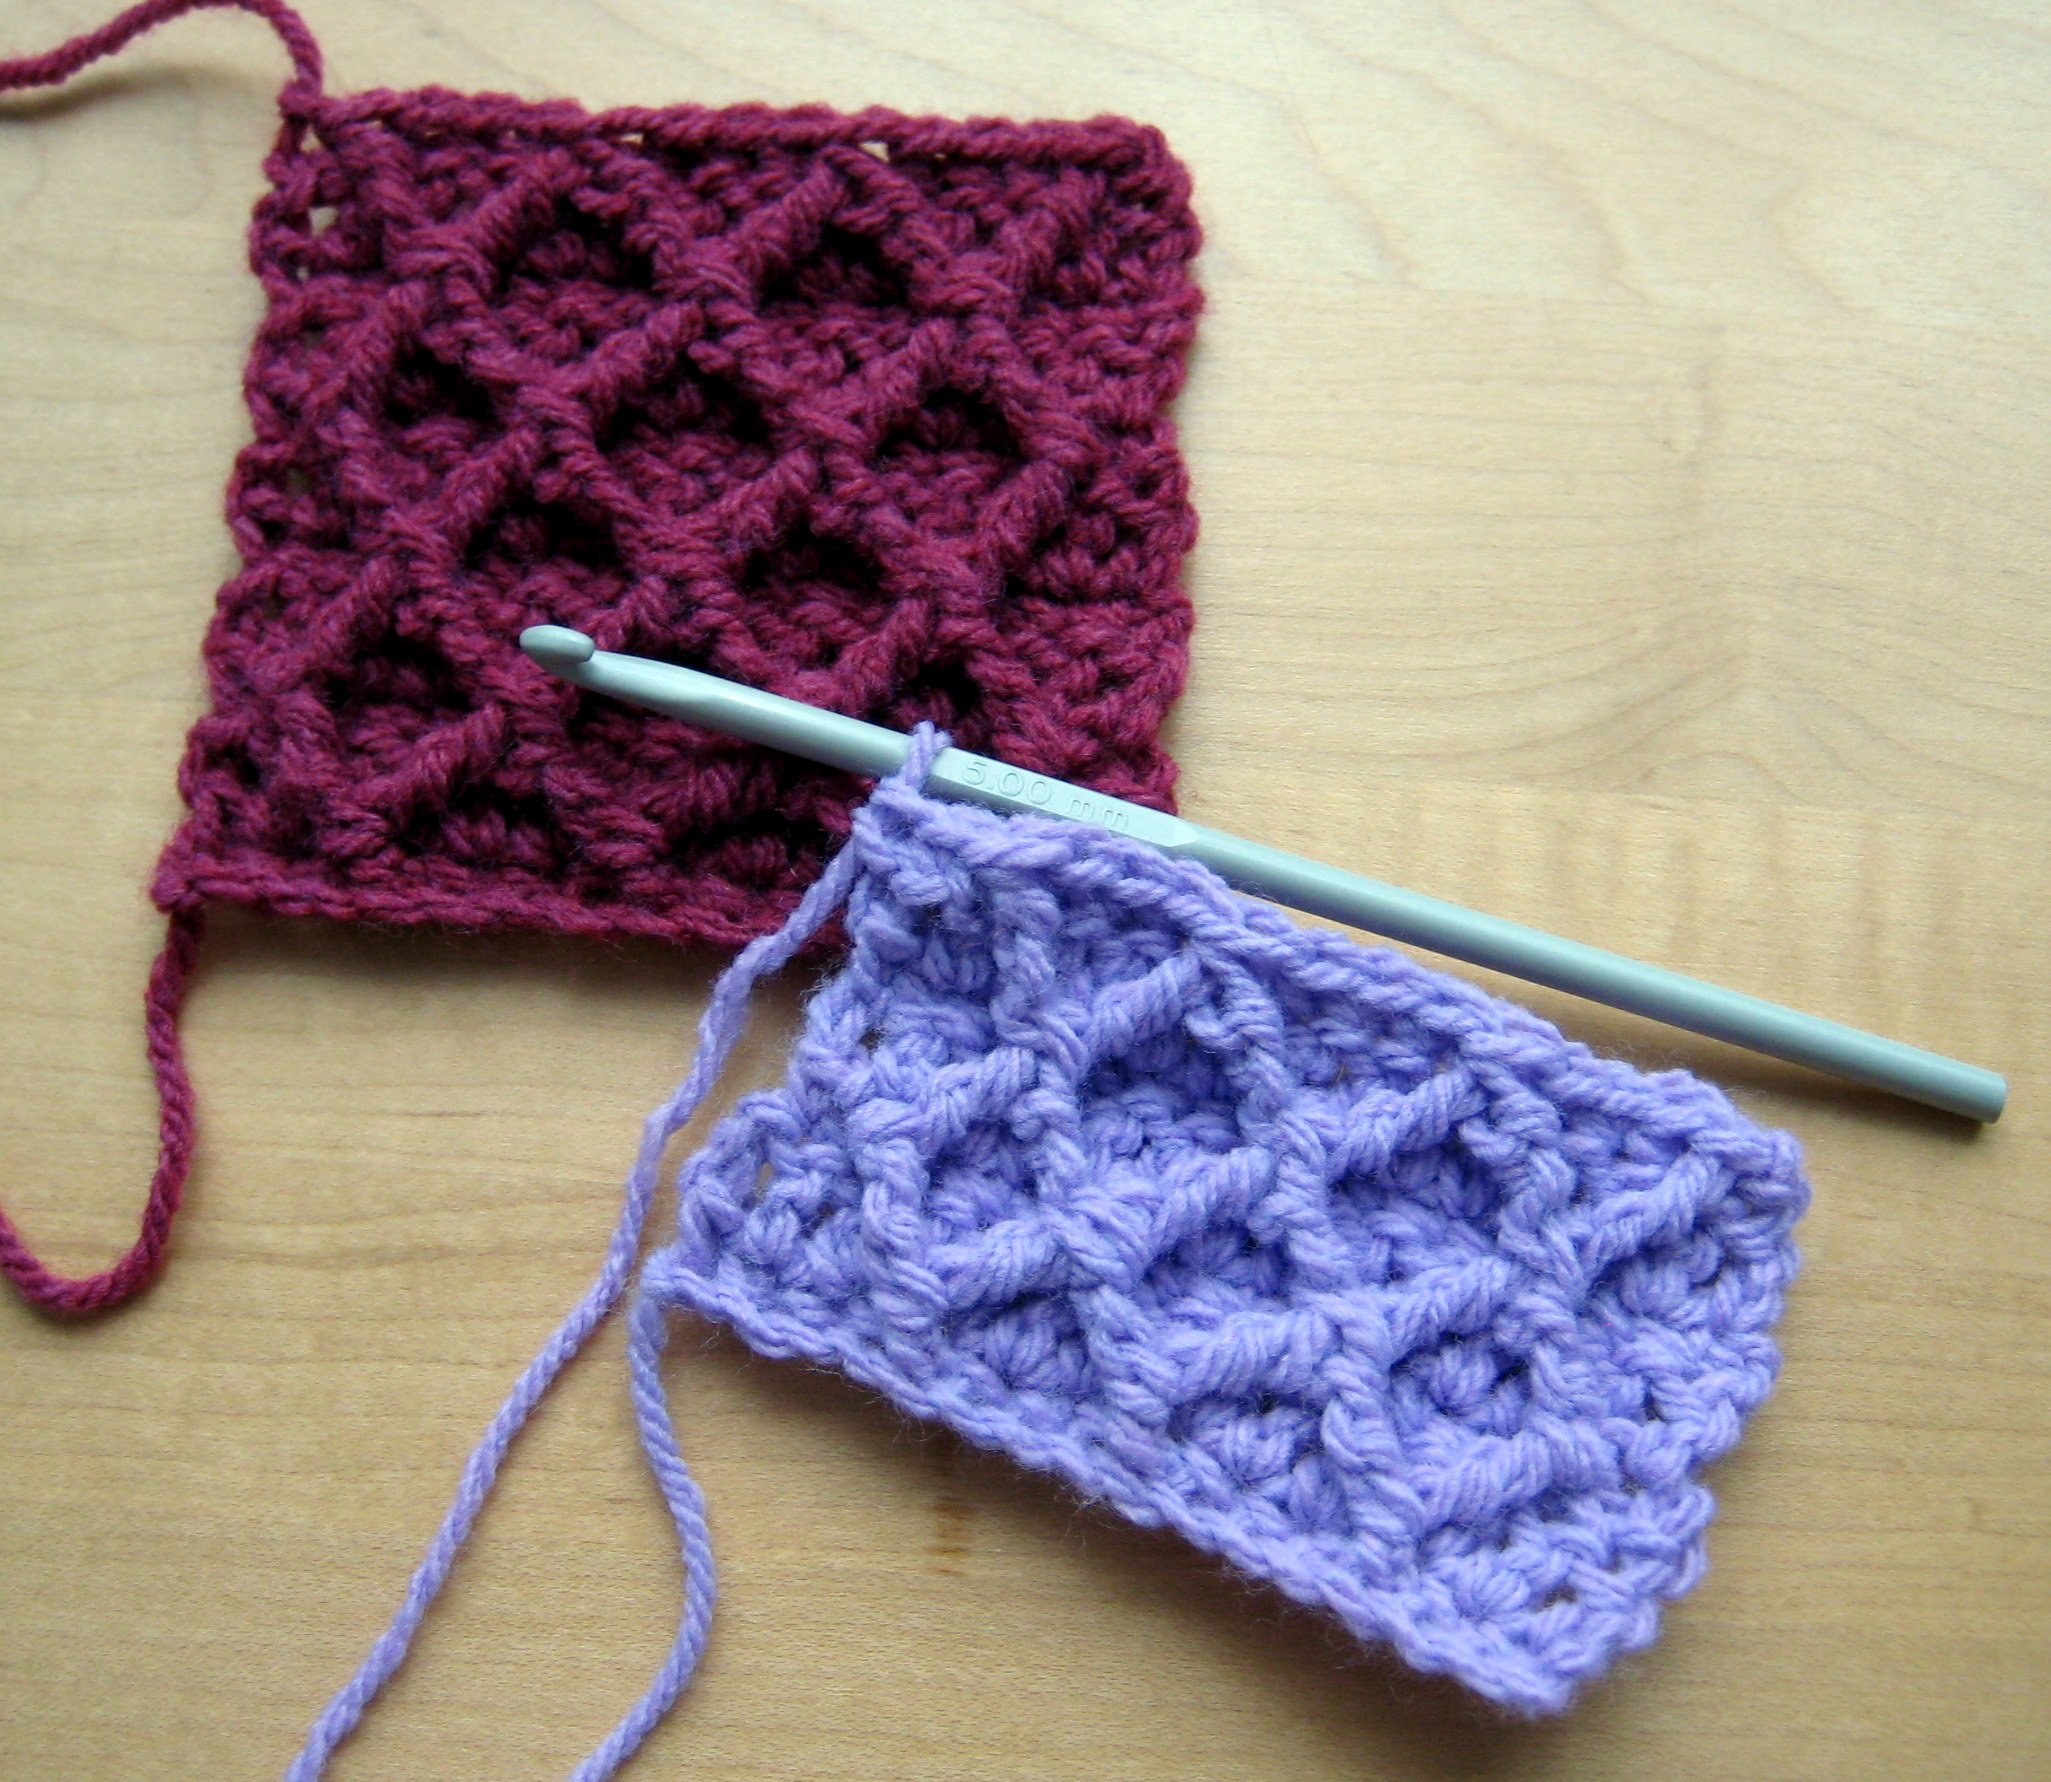 Crochet Stitches Video Tutorials : Diamond Trellis Stitch Video Tutorial Make My Day Creative